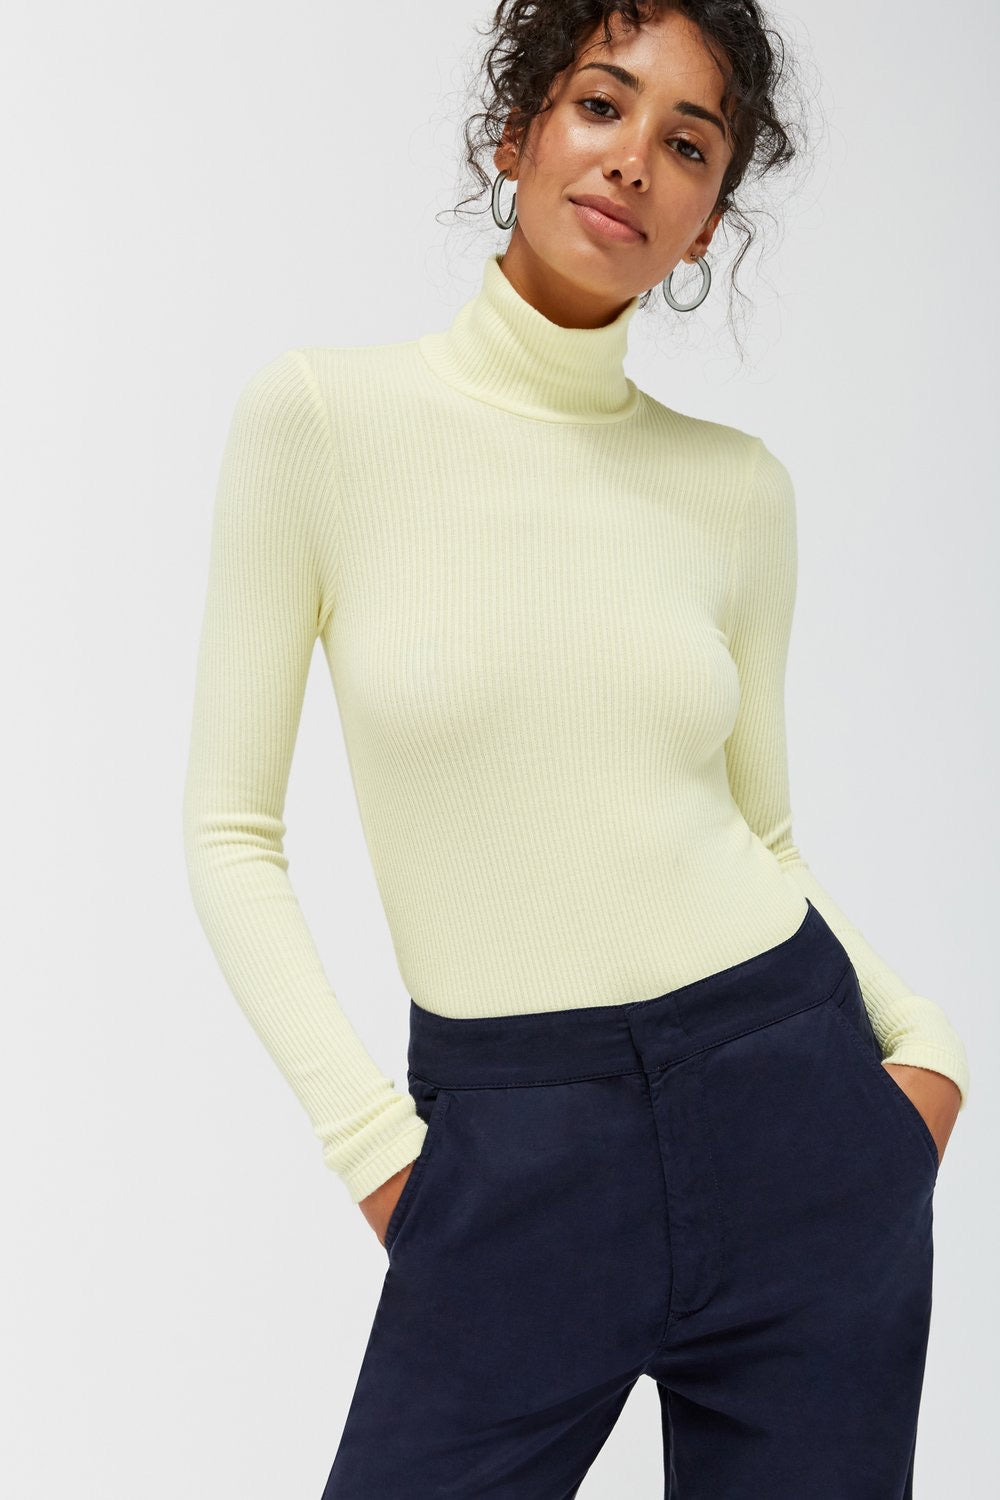 LACAUSA buttermilk ribbed turtleneck sweater